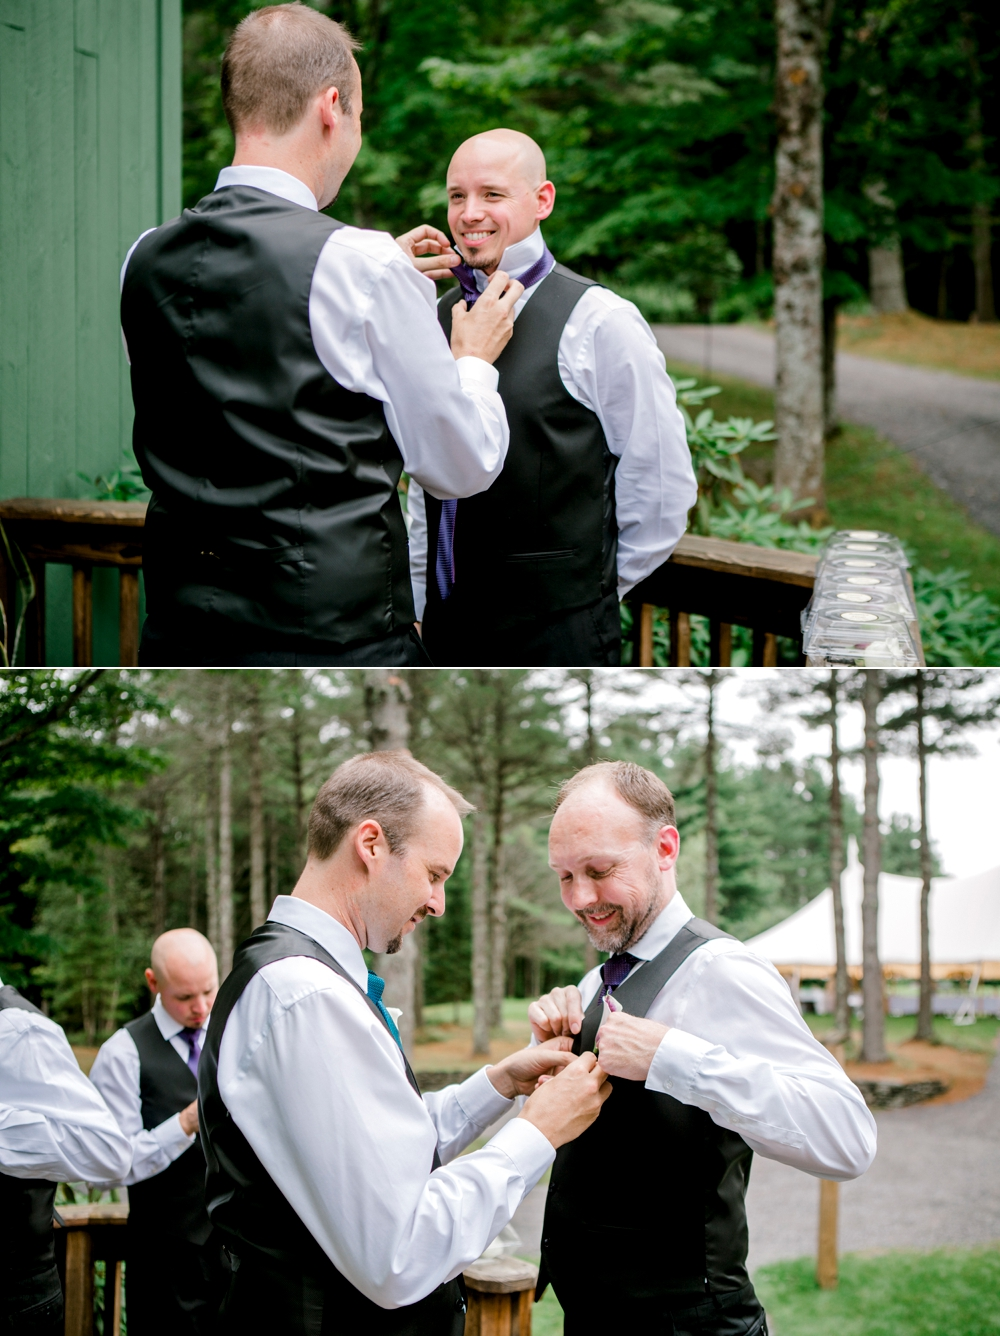 SomerbyJonesPhotography__VermontWedding_VTWedding_BackyardVermontWedding_0005.jpg